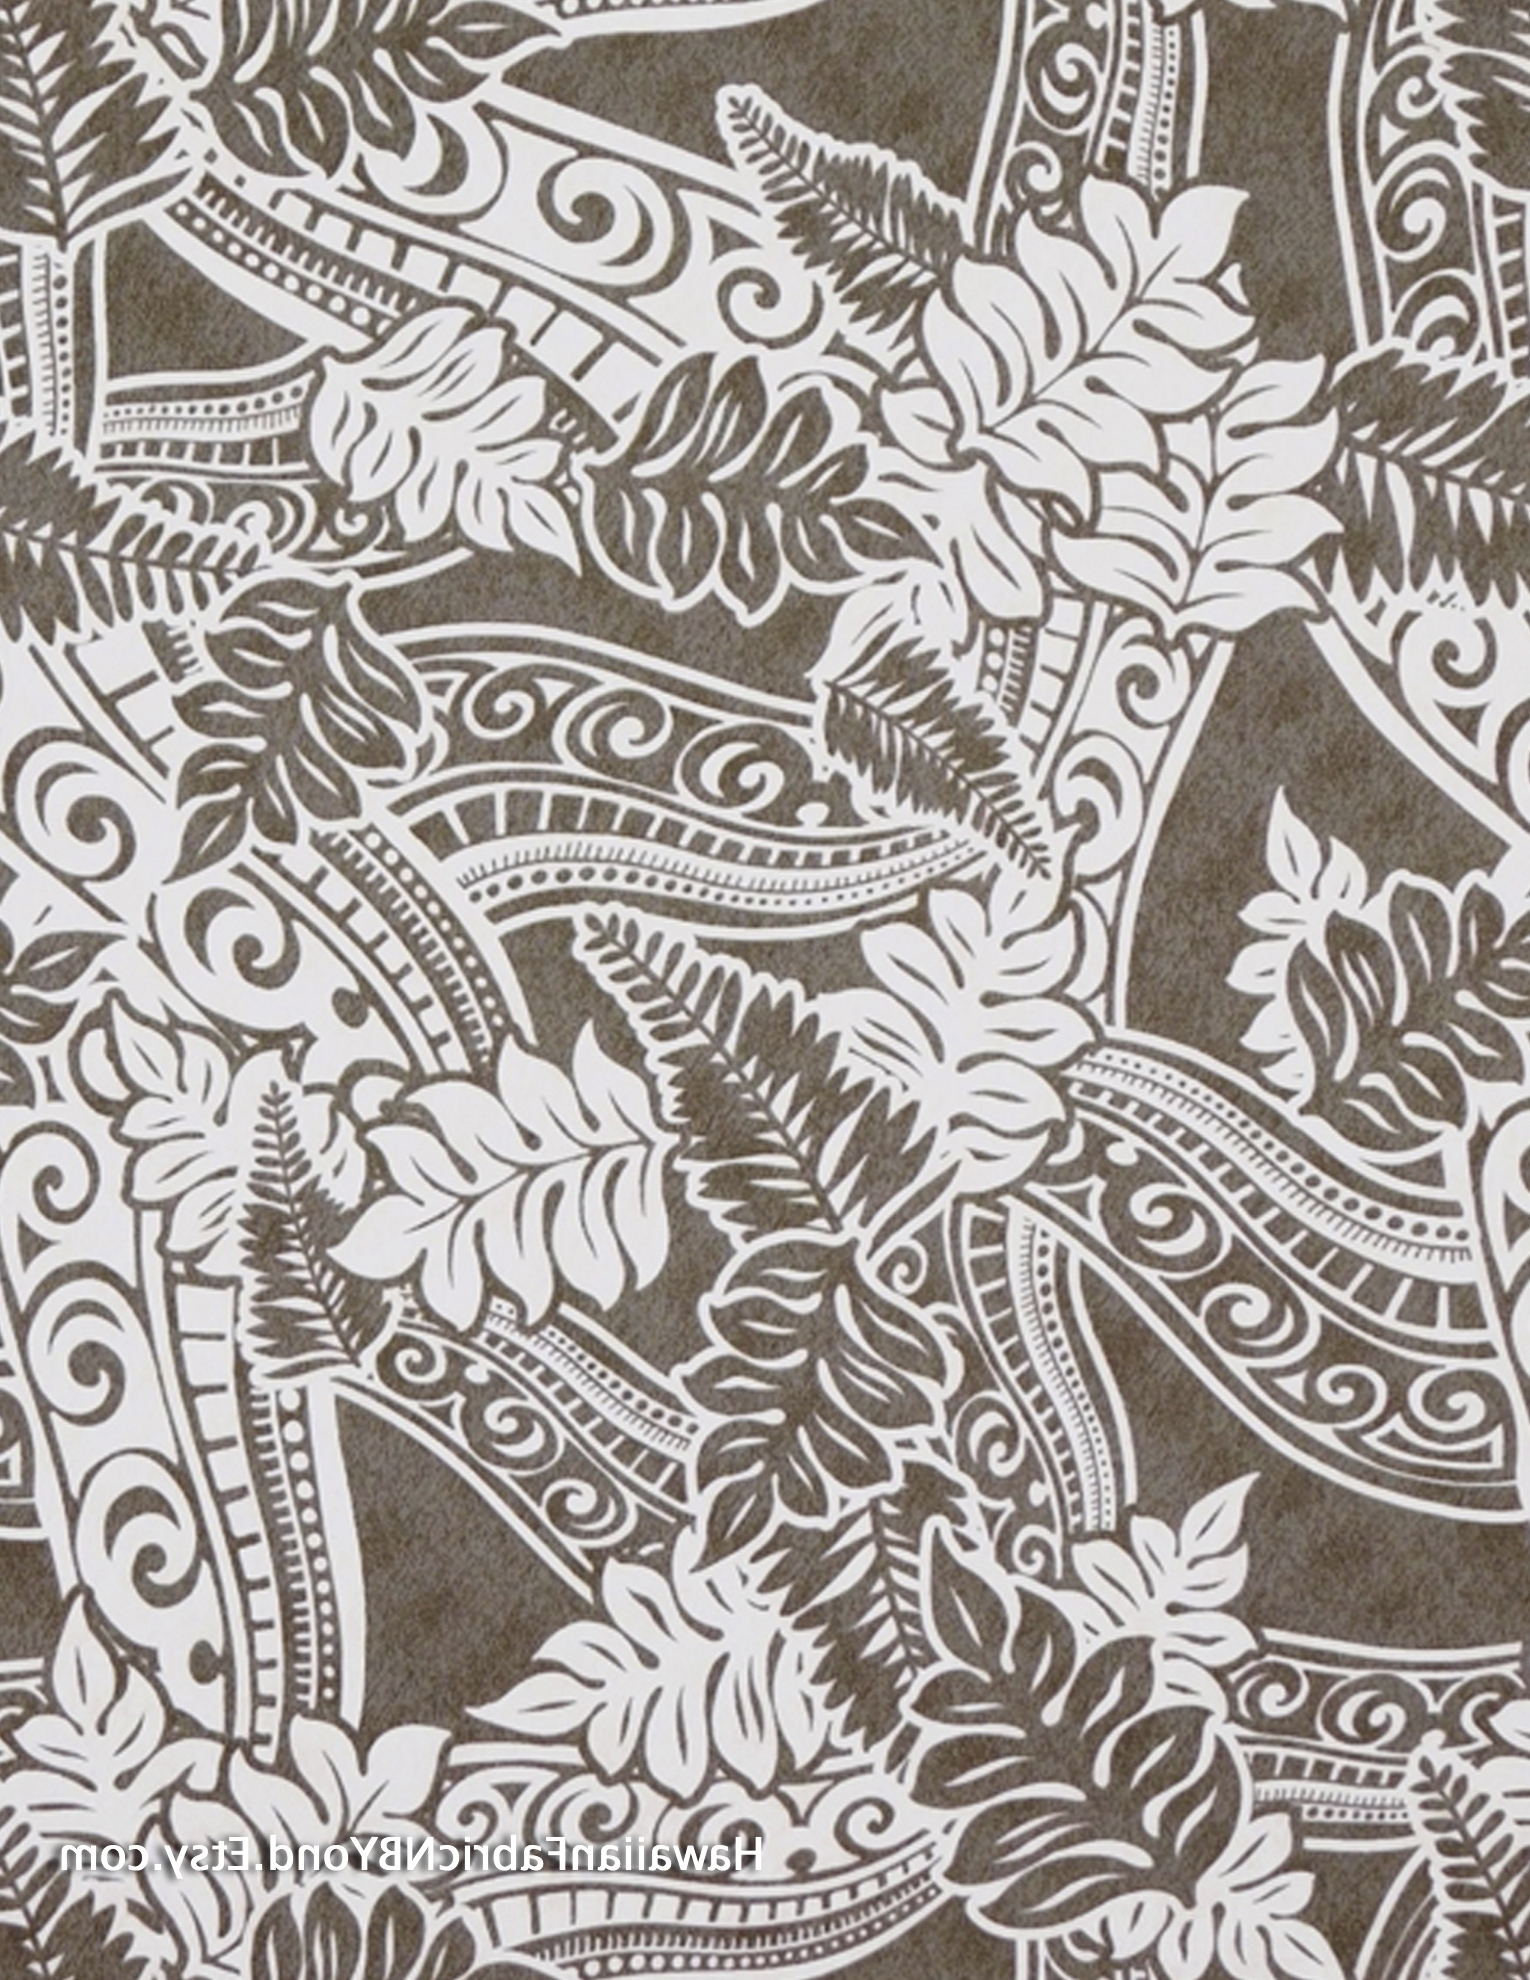 Lavalava Fabric; Polynesian Tapa Tattoo Patterns And Tropical Throughout 2018 Polynesian Wall Art (View 3 of 15)